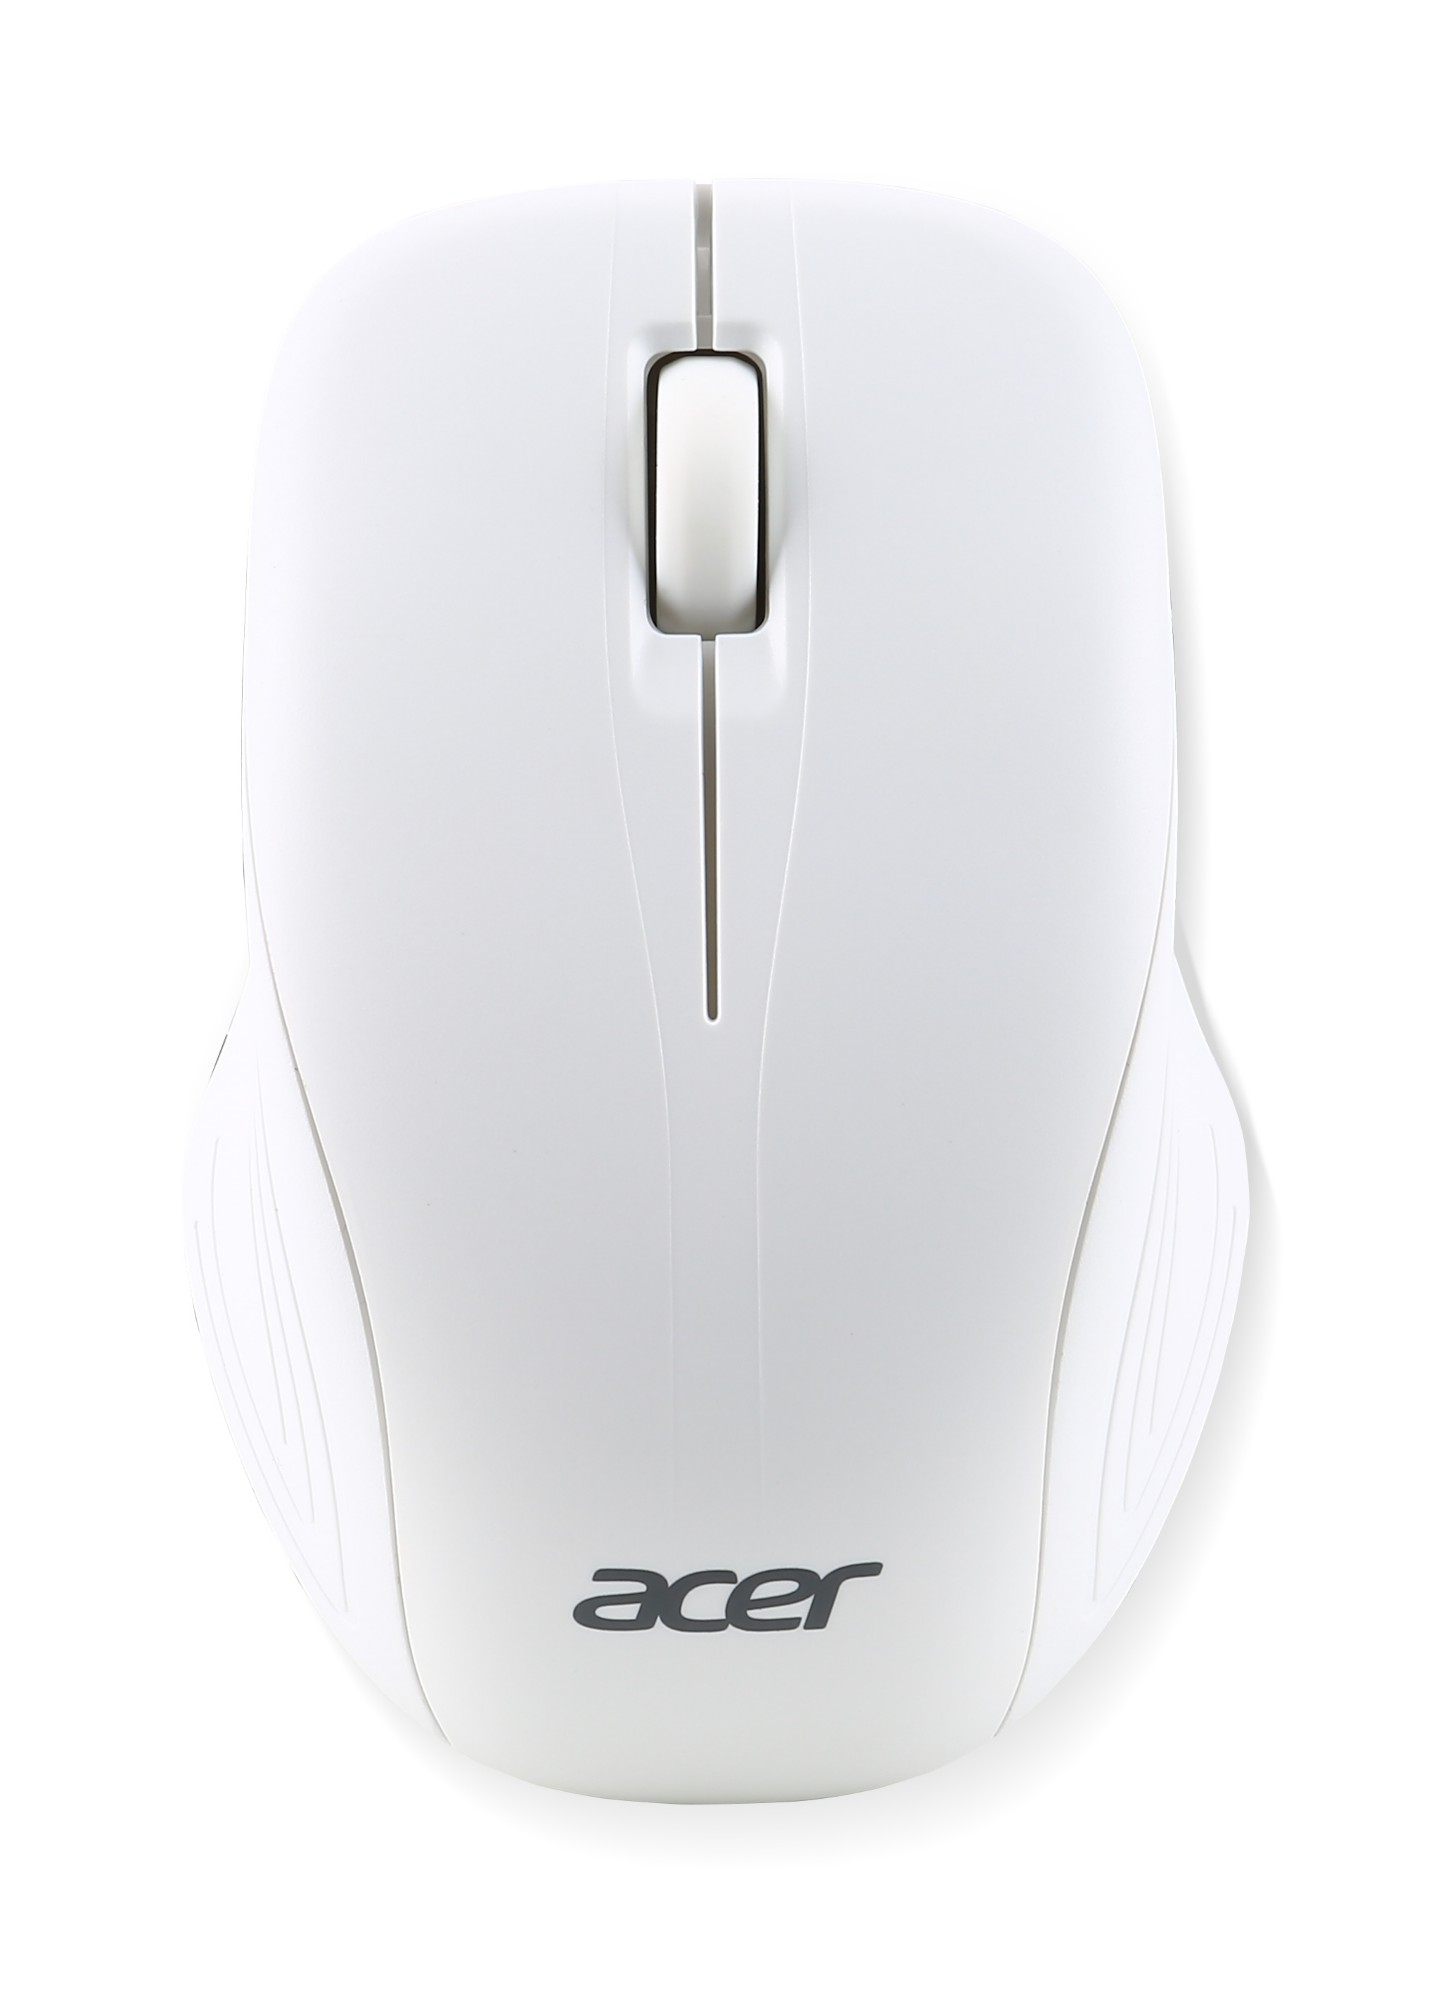 ACER NP.MCE1A.007 AMR510 MICE RF WIRELESS OPTICAL 1000 DPI AMBIDEXTROUS WHITE